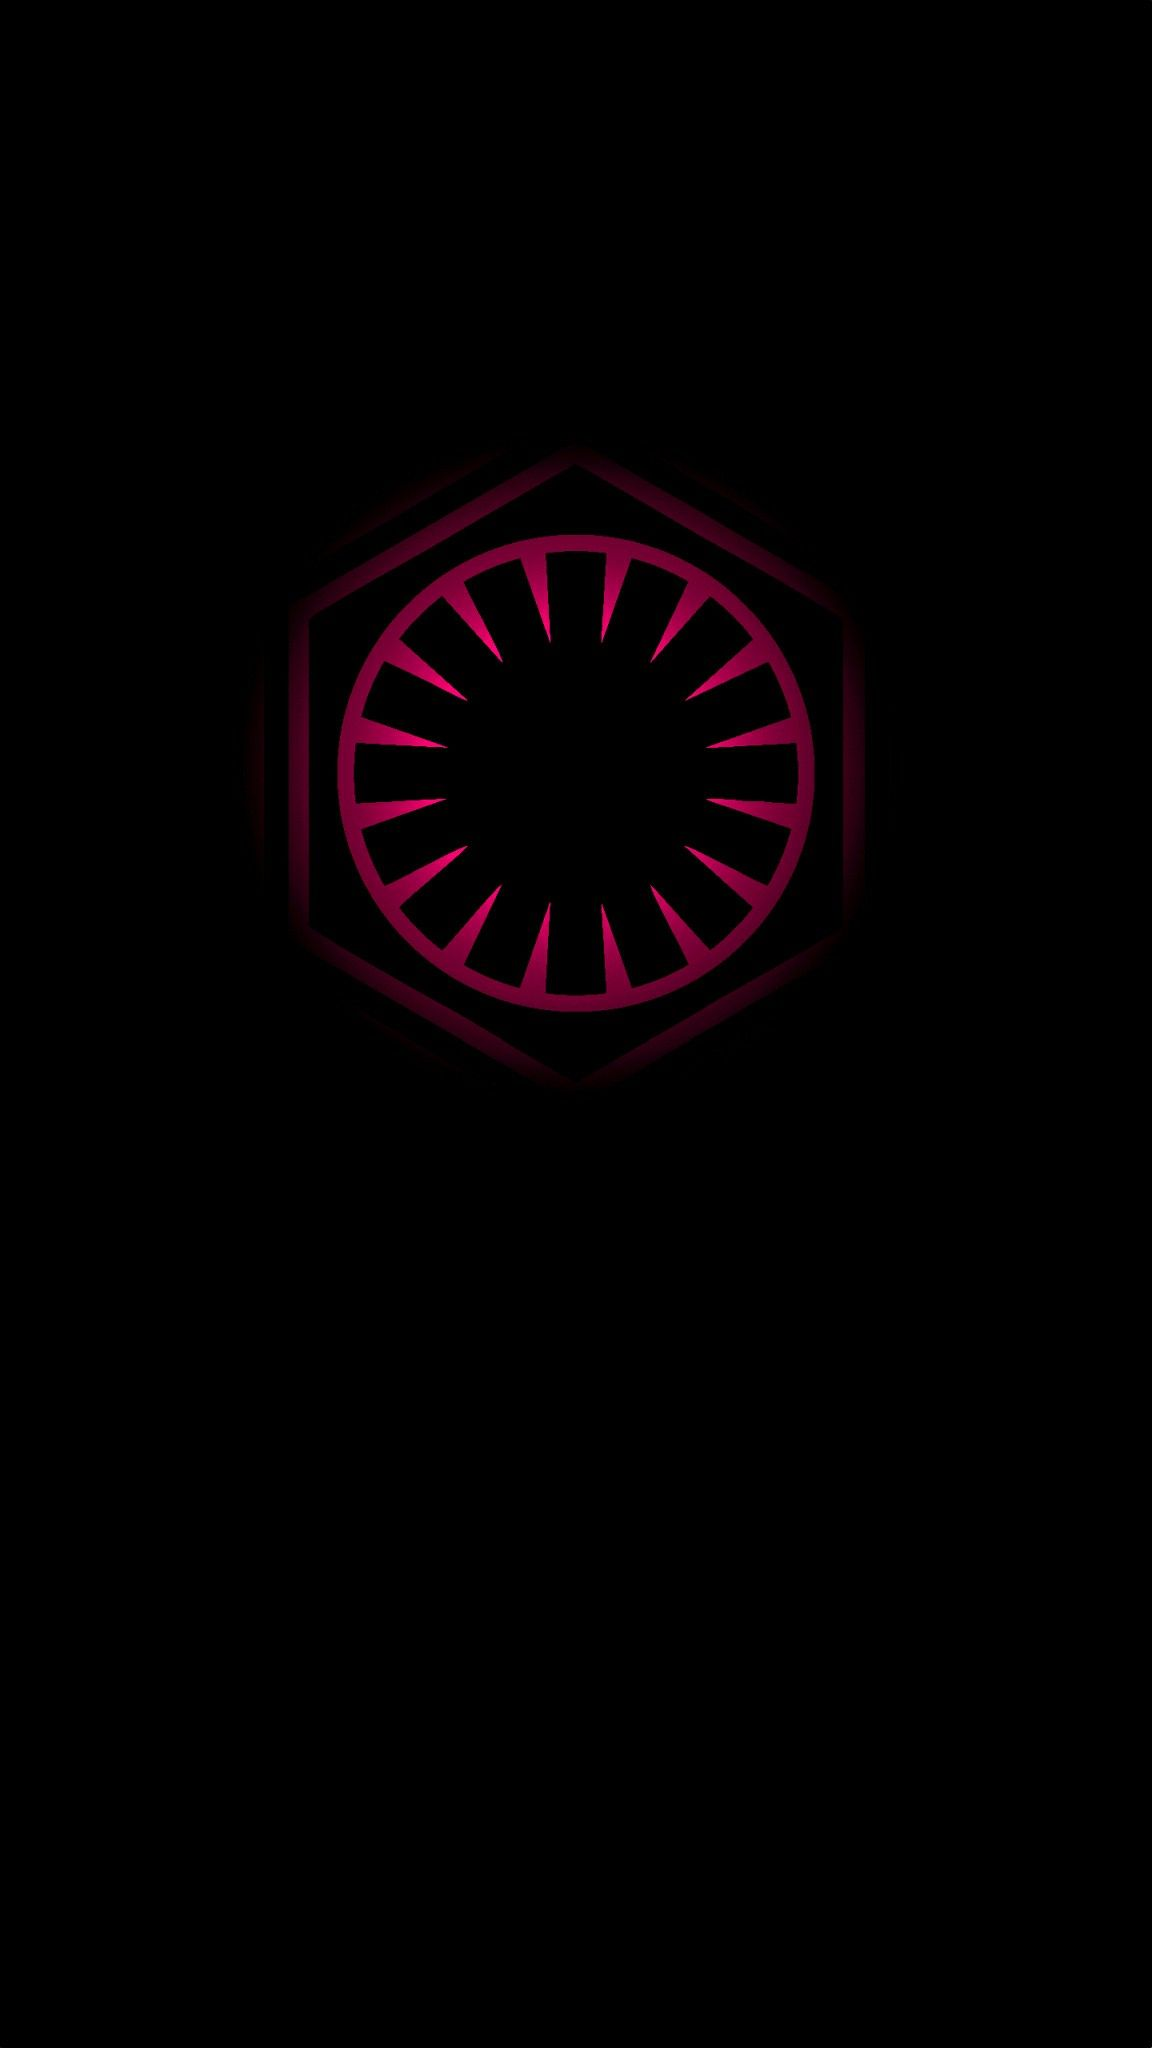 Pin By Abdoulaye Maiga On Wallpaper Star Wars Wallpaper Android